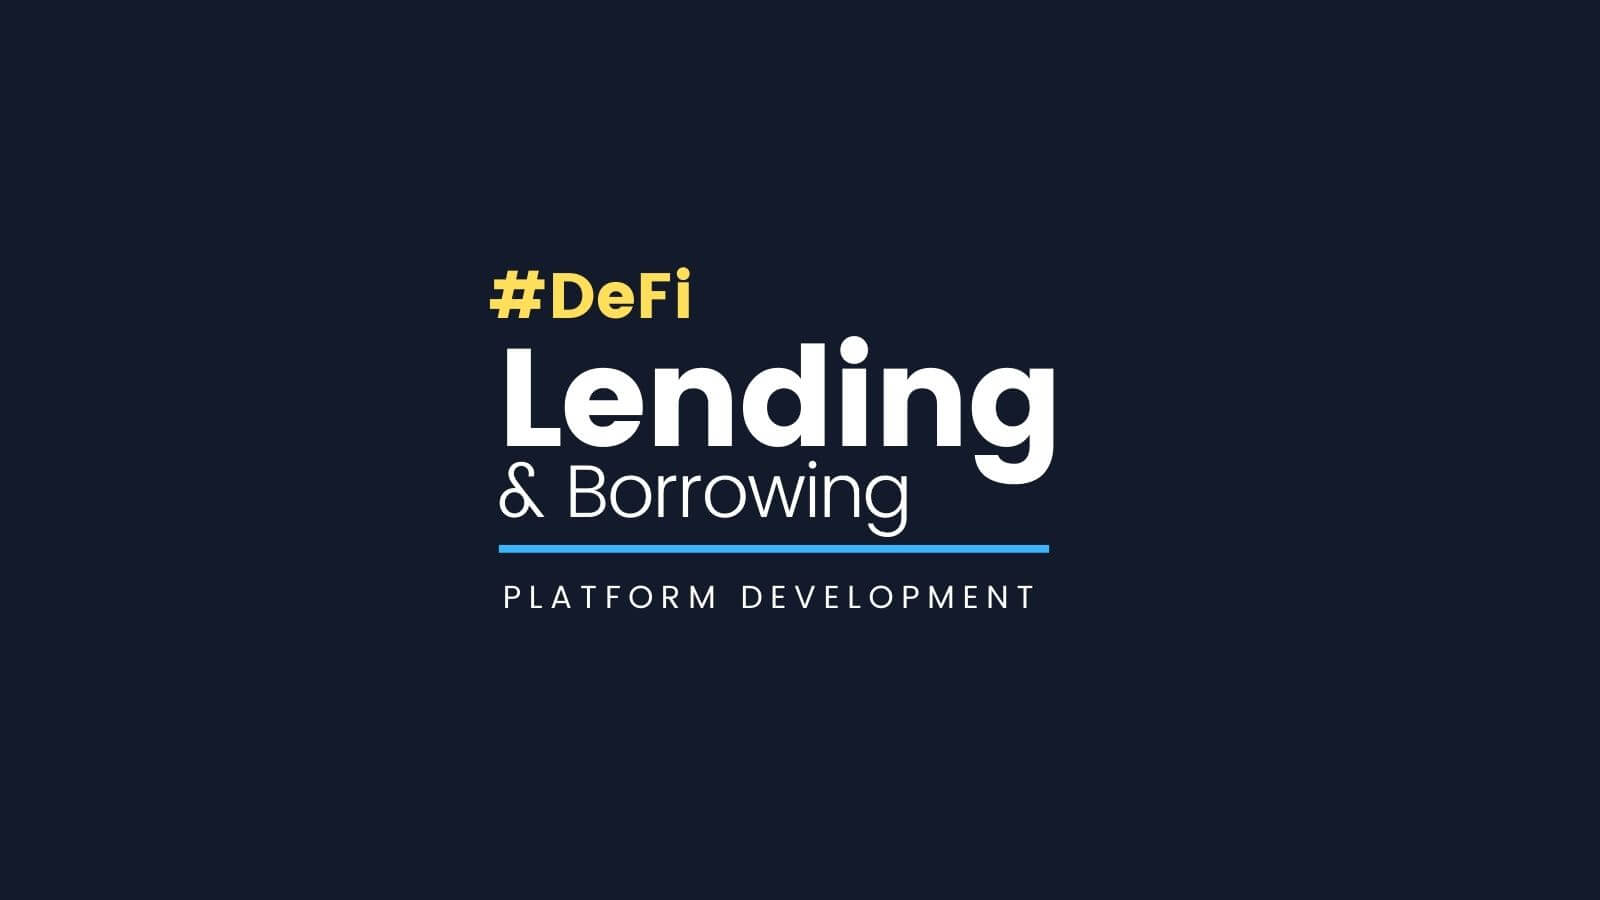 DeFi Lending Platform Development On Aave and Compound